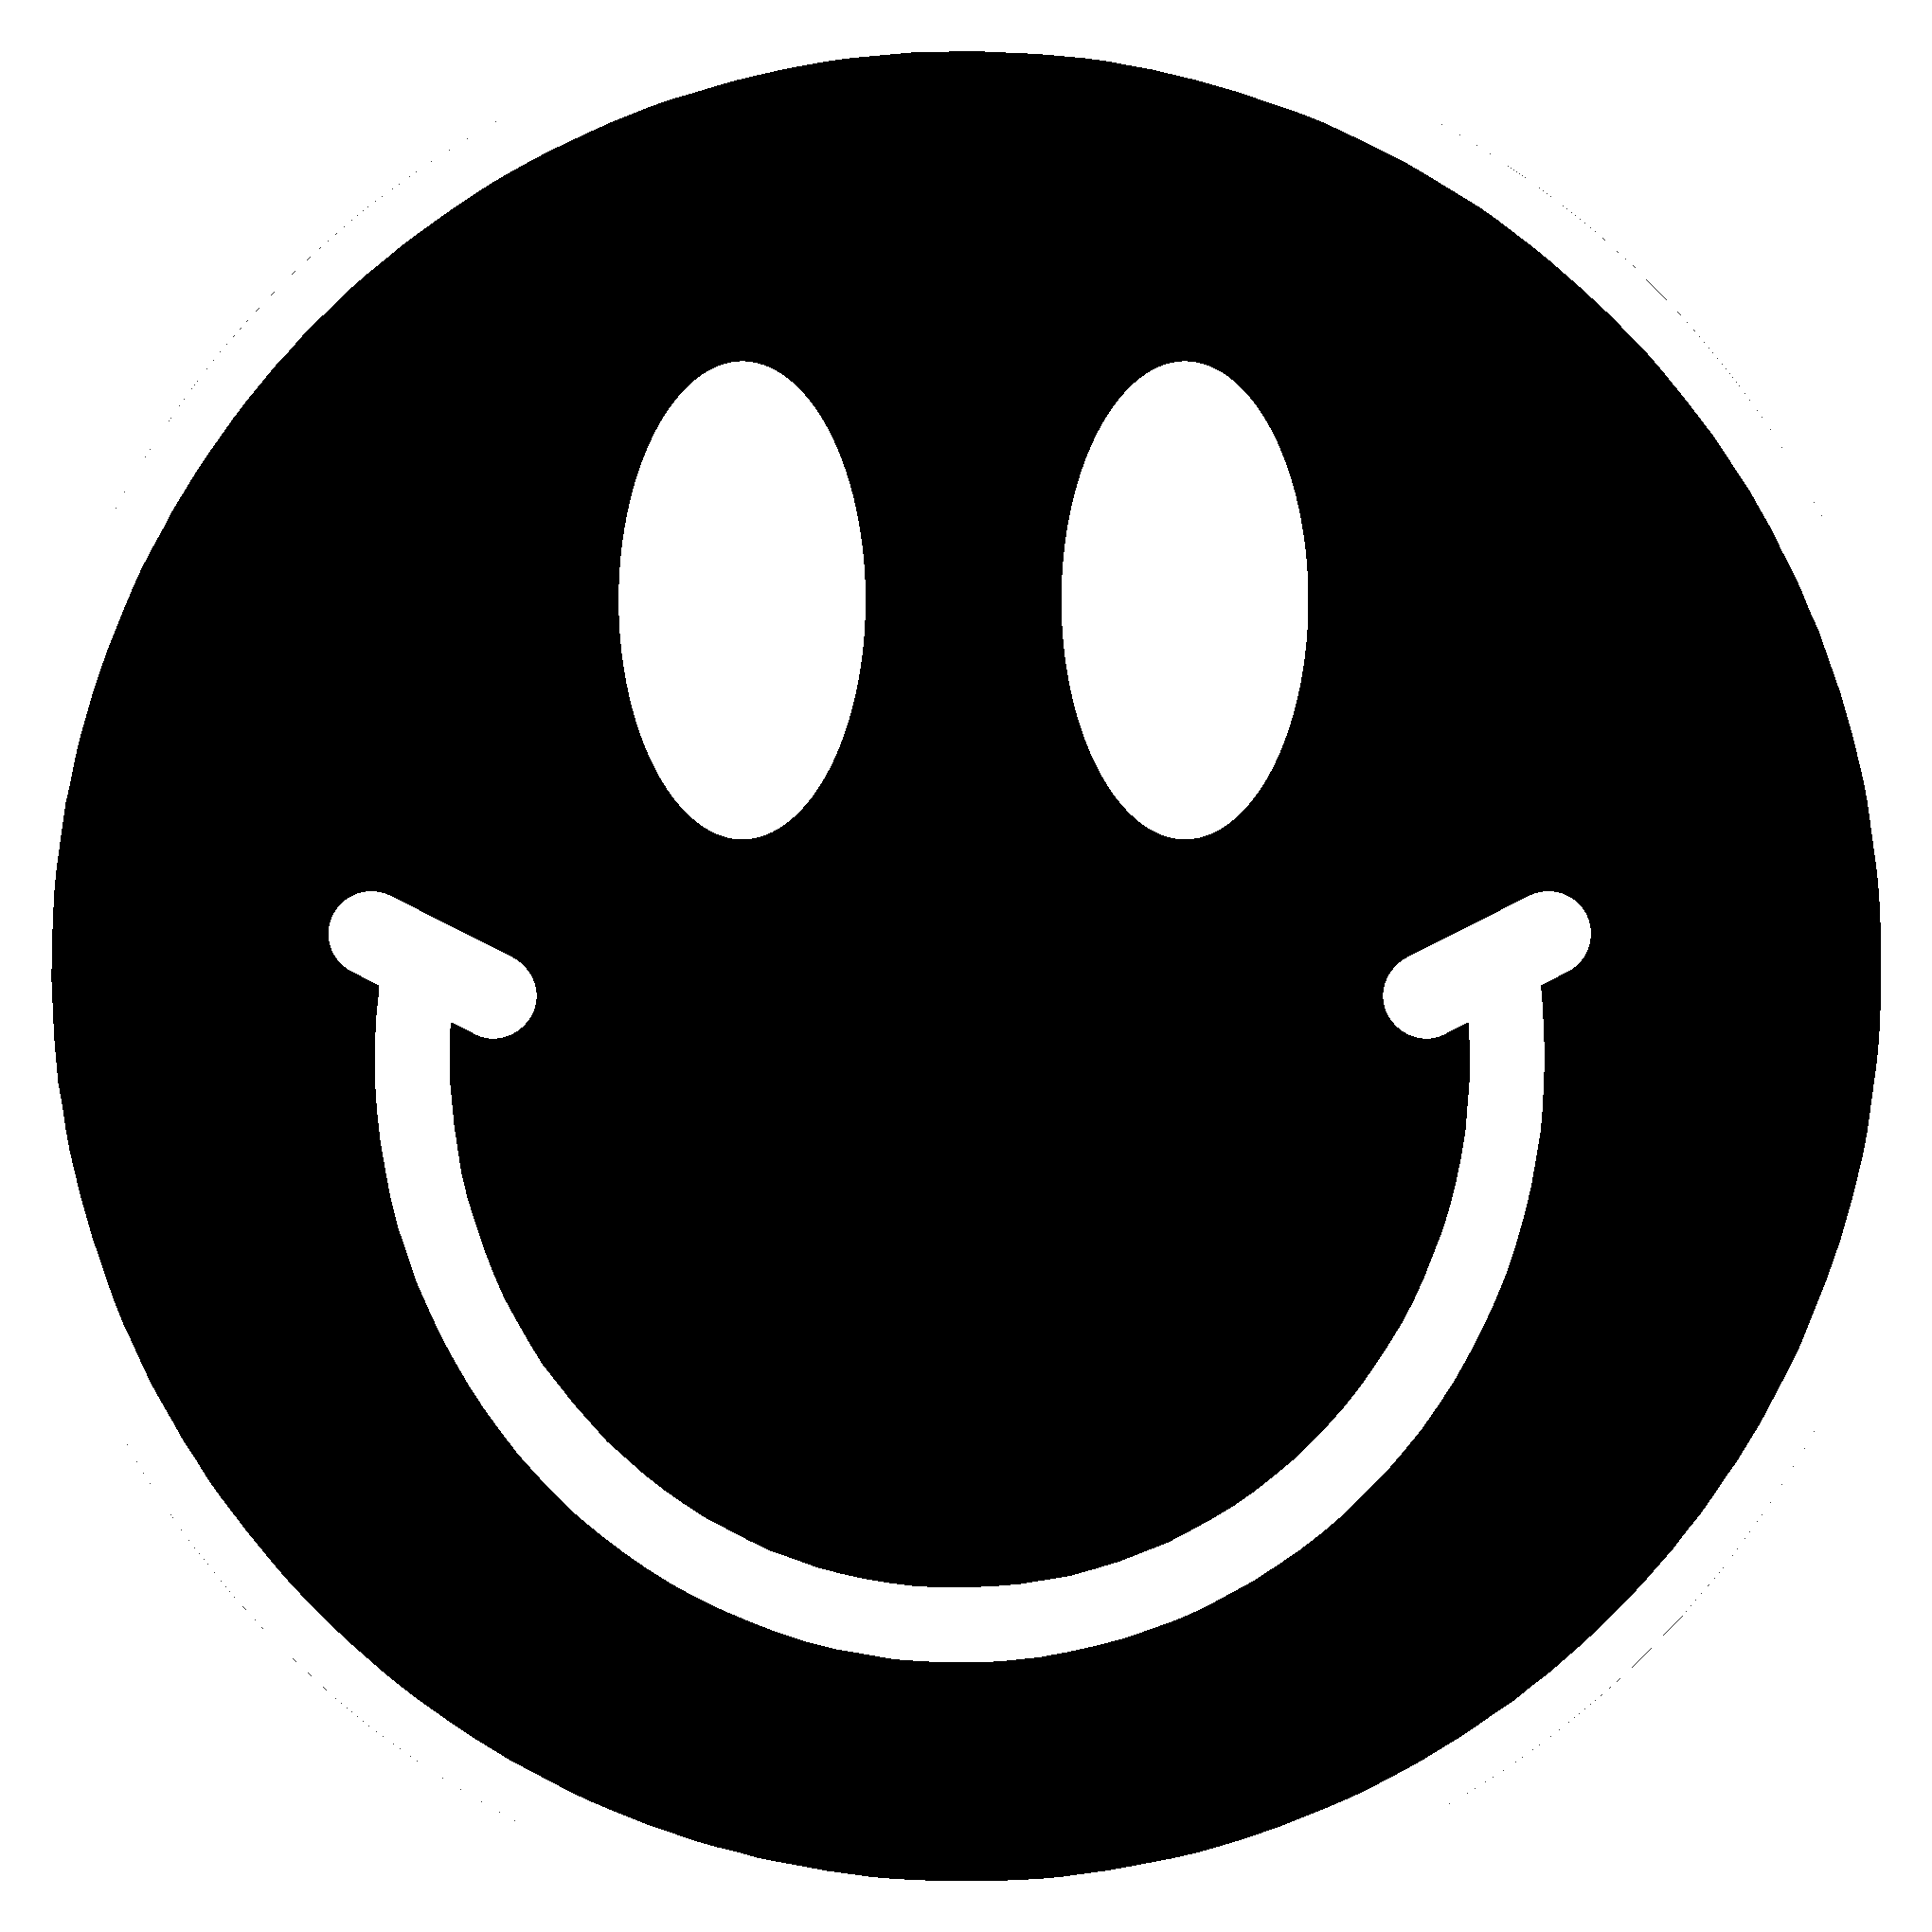 Smiley face black and white smiley face clipart black and white free 6 - PNG Happy Face Black And White